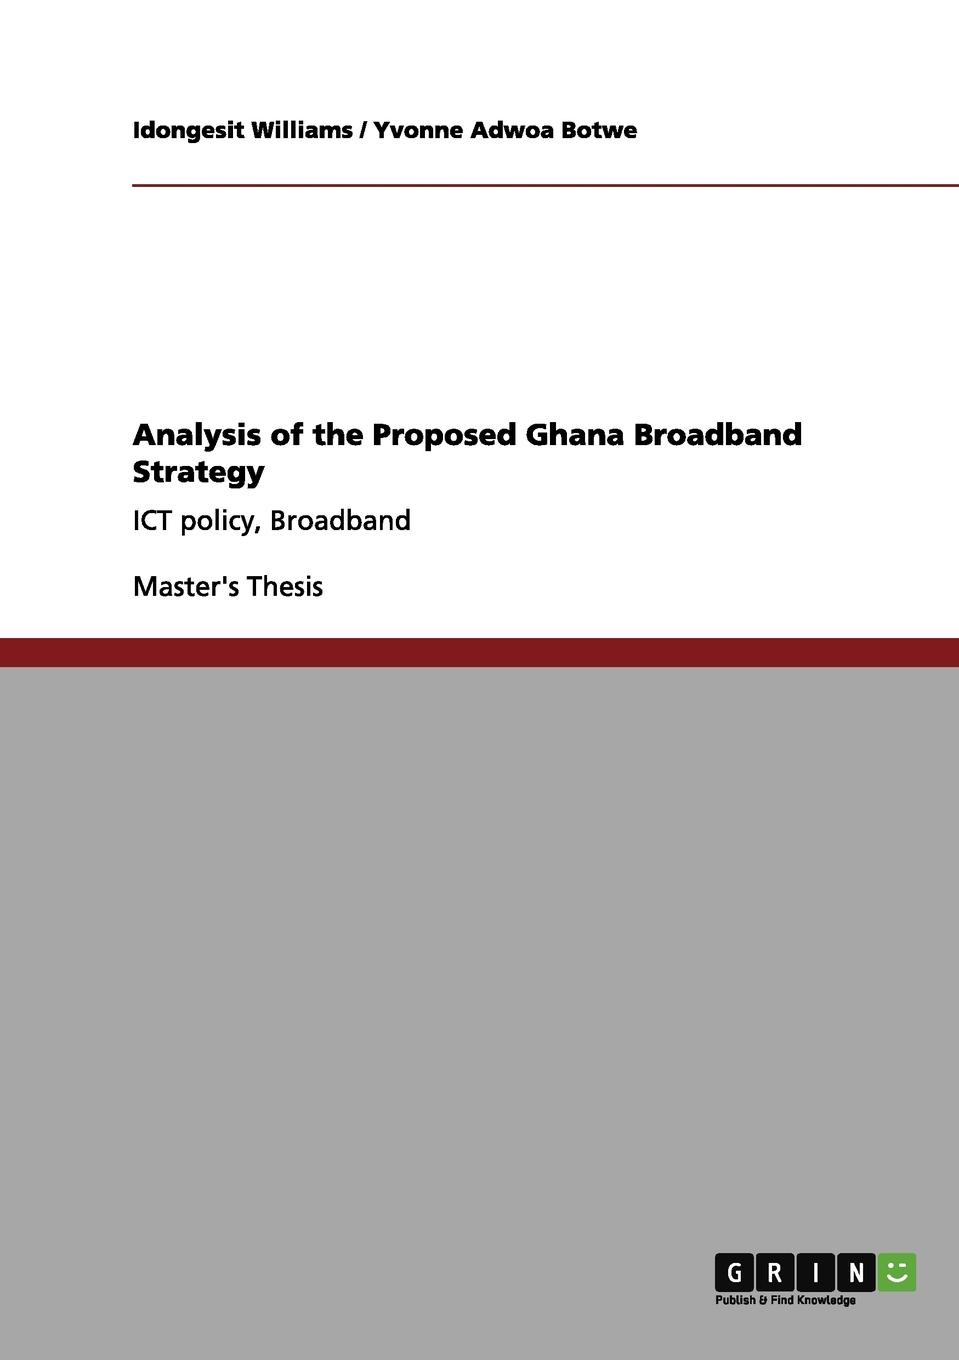 Yvonne Adwoa Botwe, Idongesit Williams Analysis of the Proposed Ghana Broadband Strategy a history of communications media and society from the evolution of speech to the internet